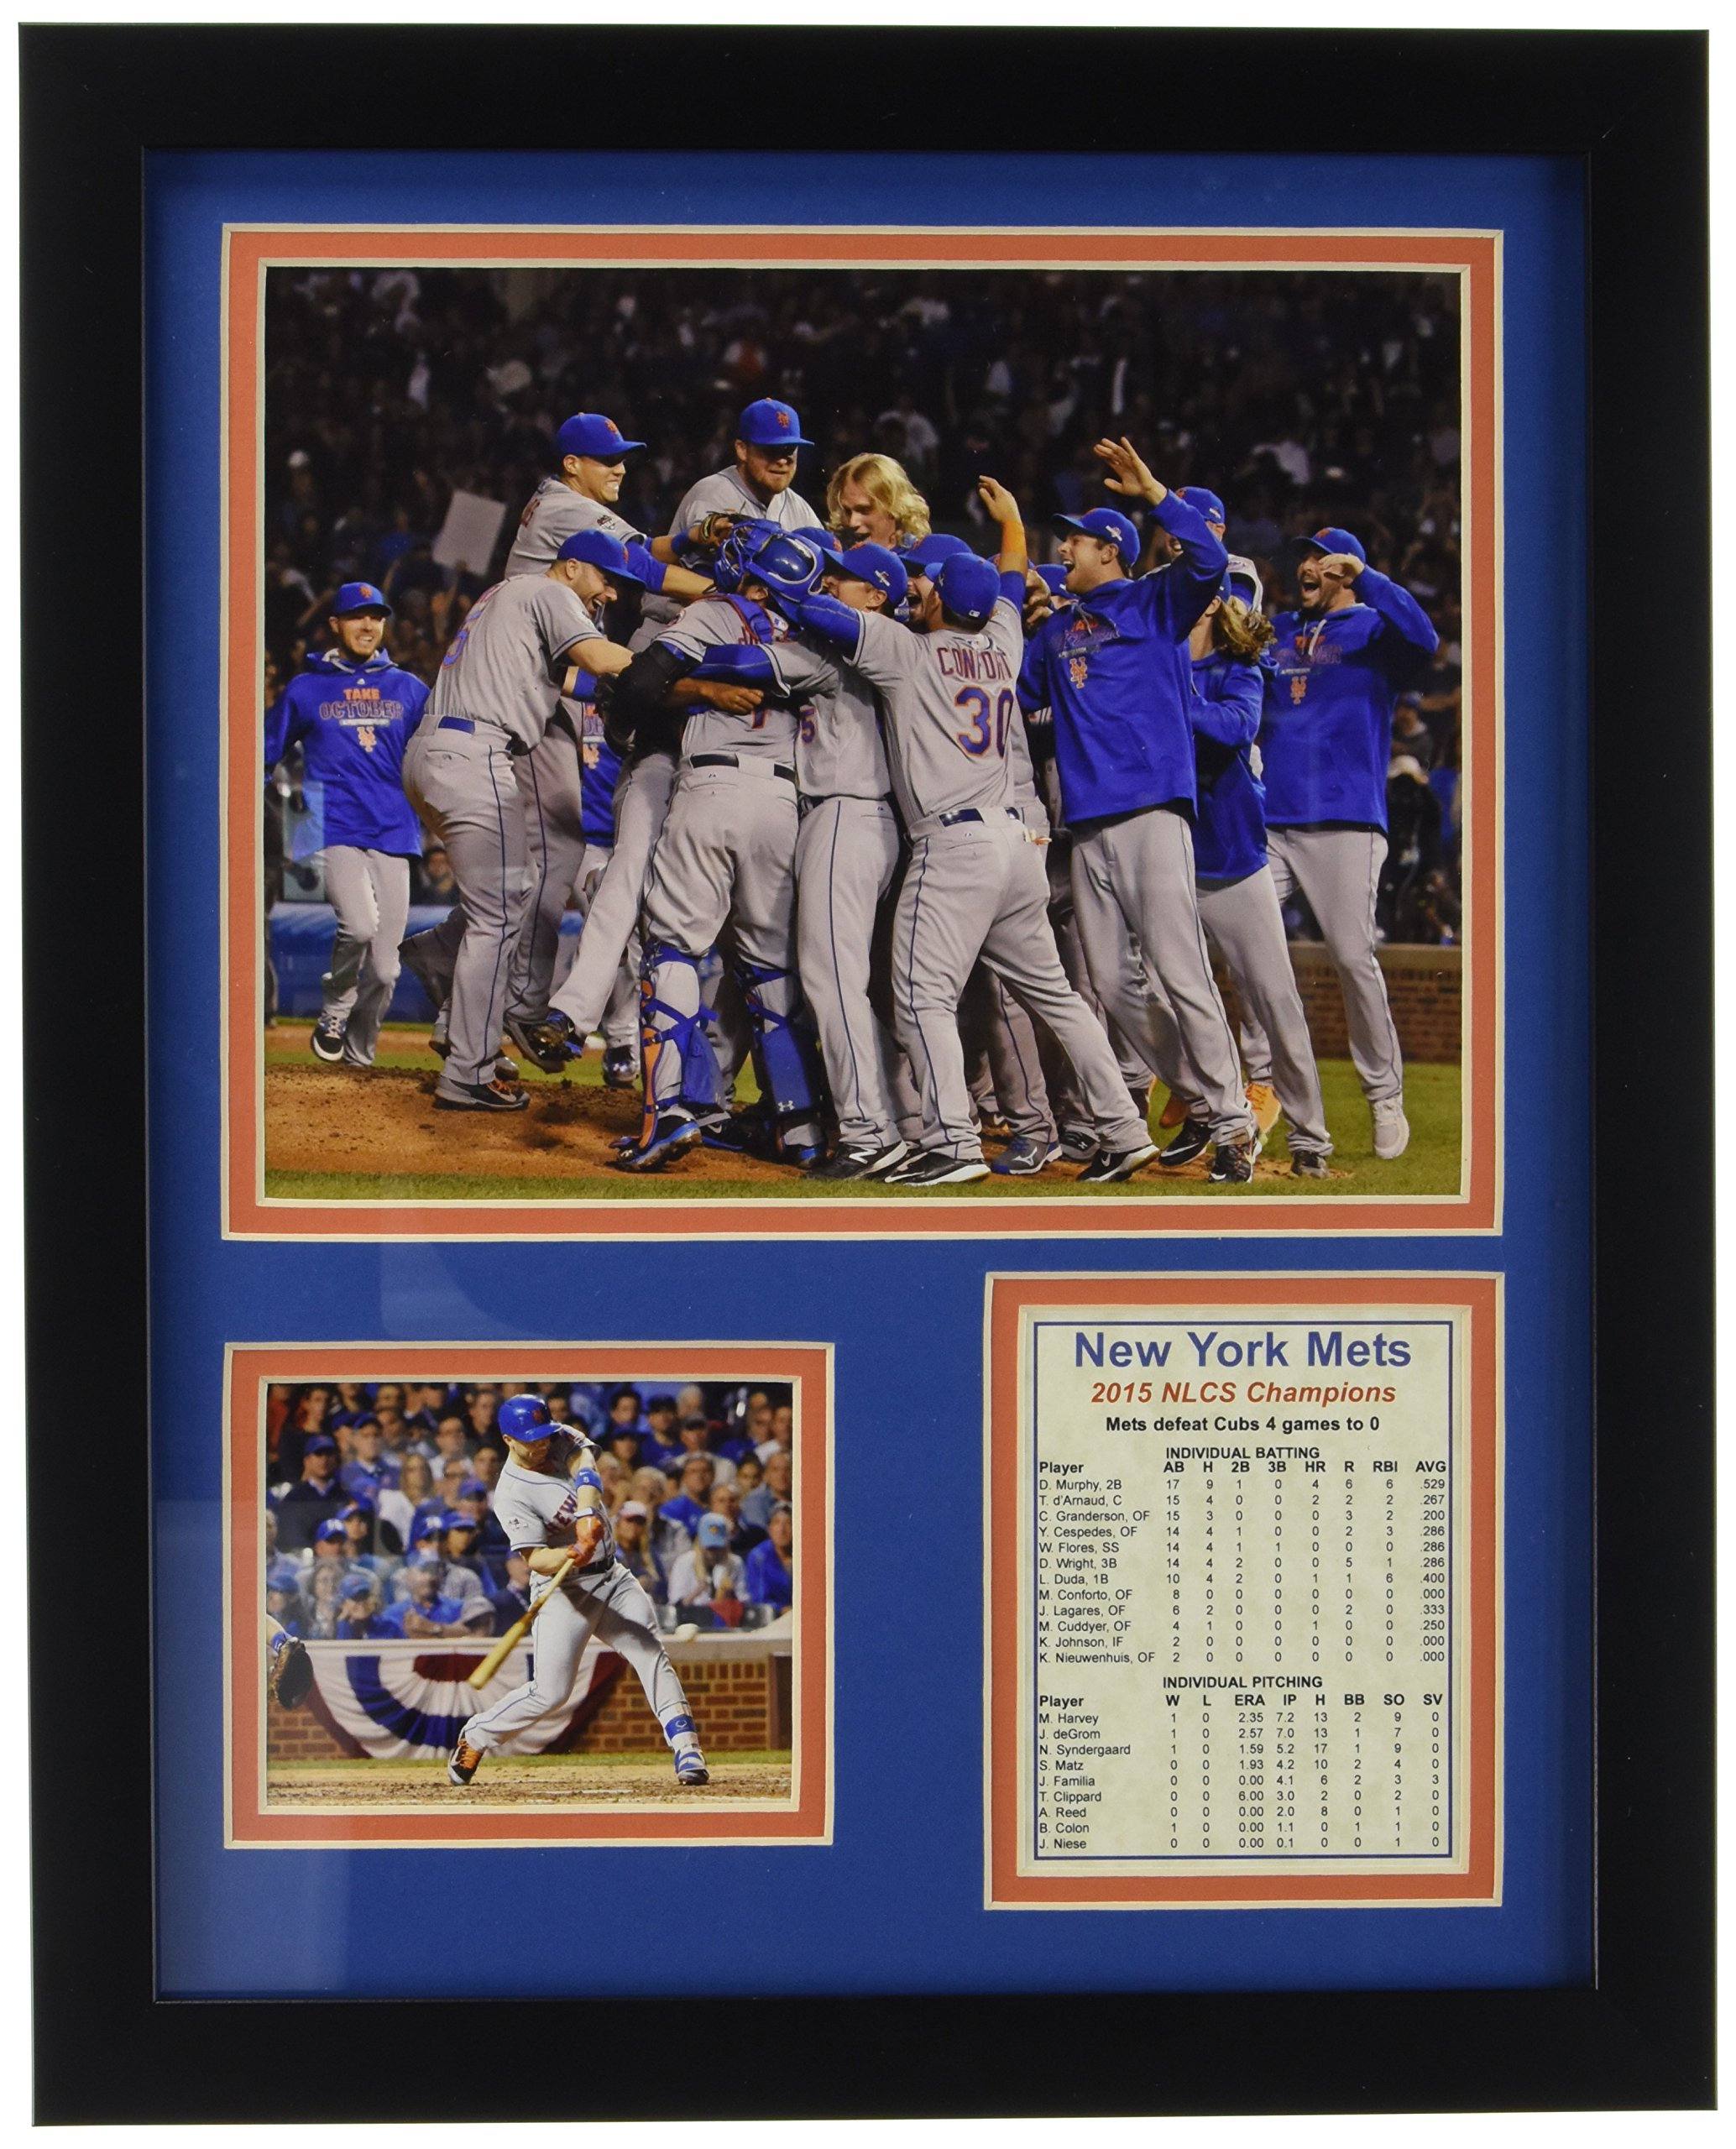 2015 New York Mets NLCS Champions 11'' x 14'' Framed Photo Collage by Legends Never Die, Inc. by Legends Never Die, Inc.